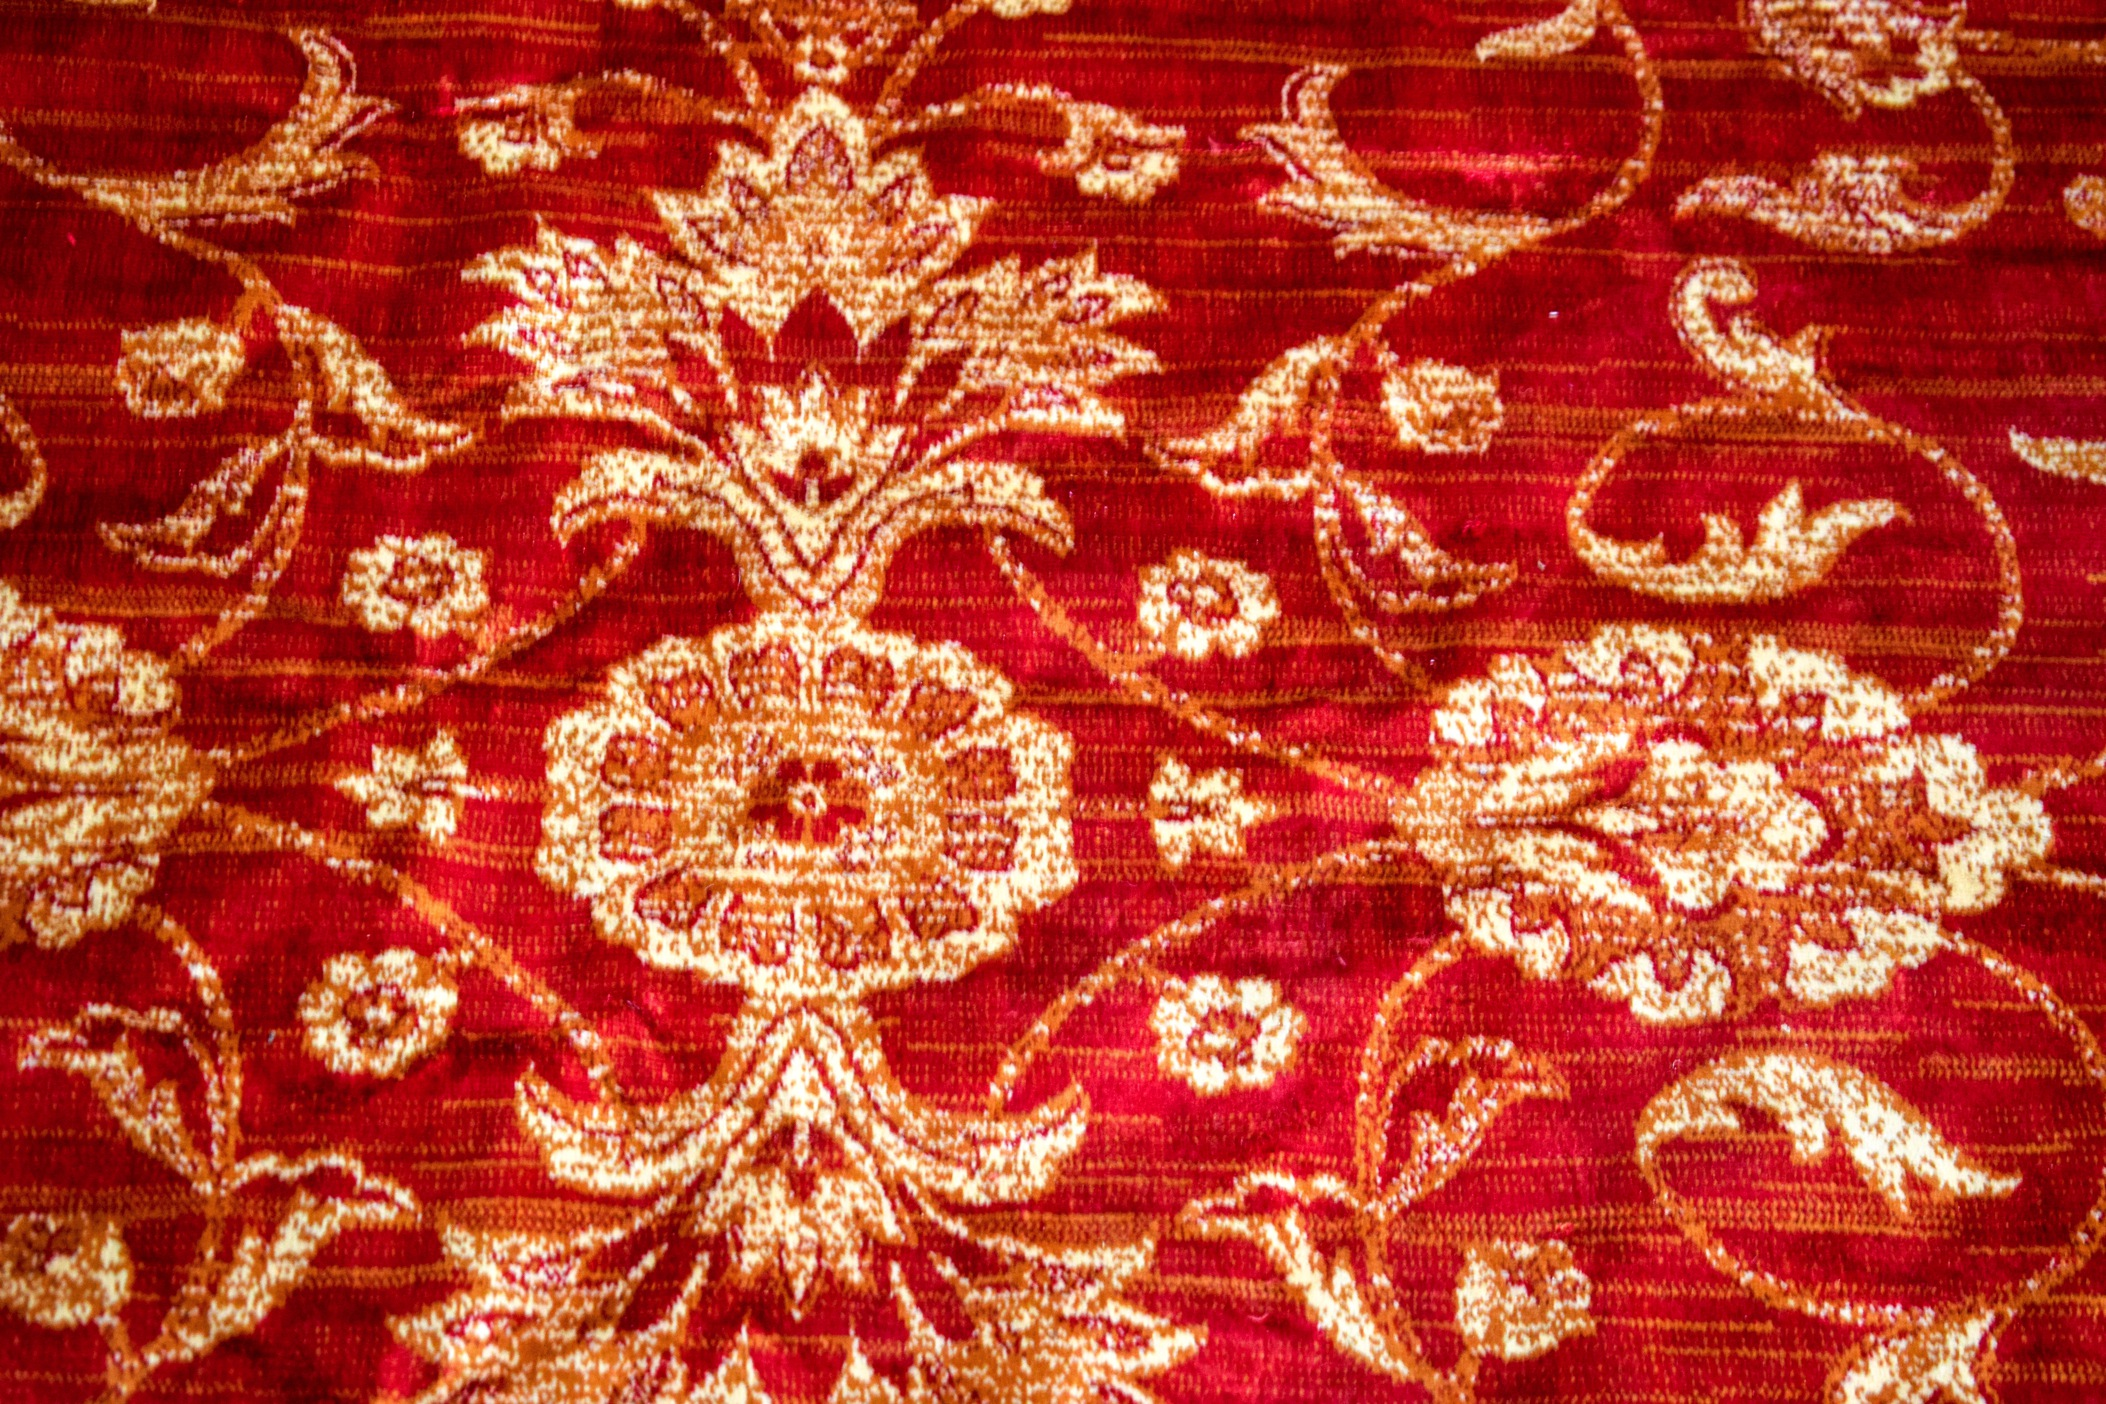 Lot 2930 - A 20TH CENTURY ZIEGLER RED GROUND RUG, decorated with foliage. 230 cm x 160 cm.